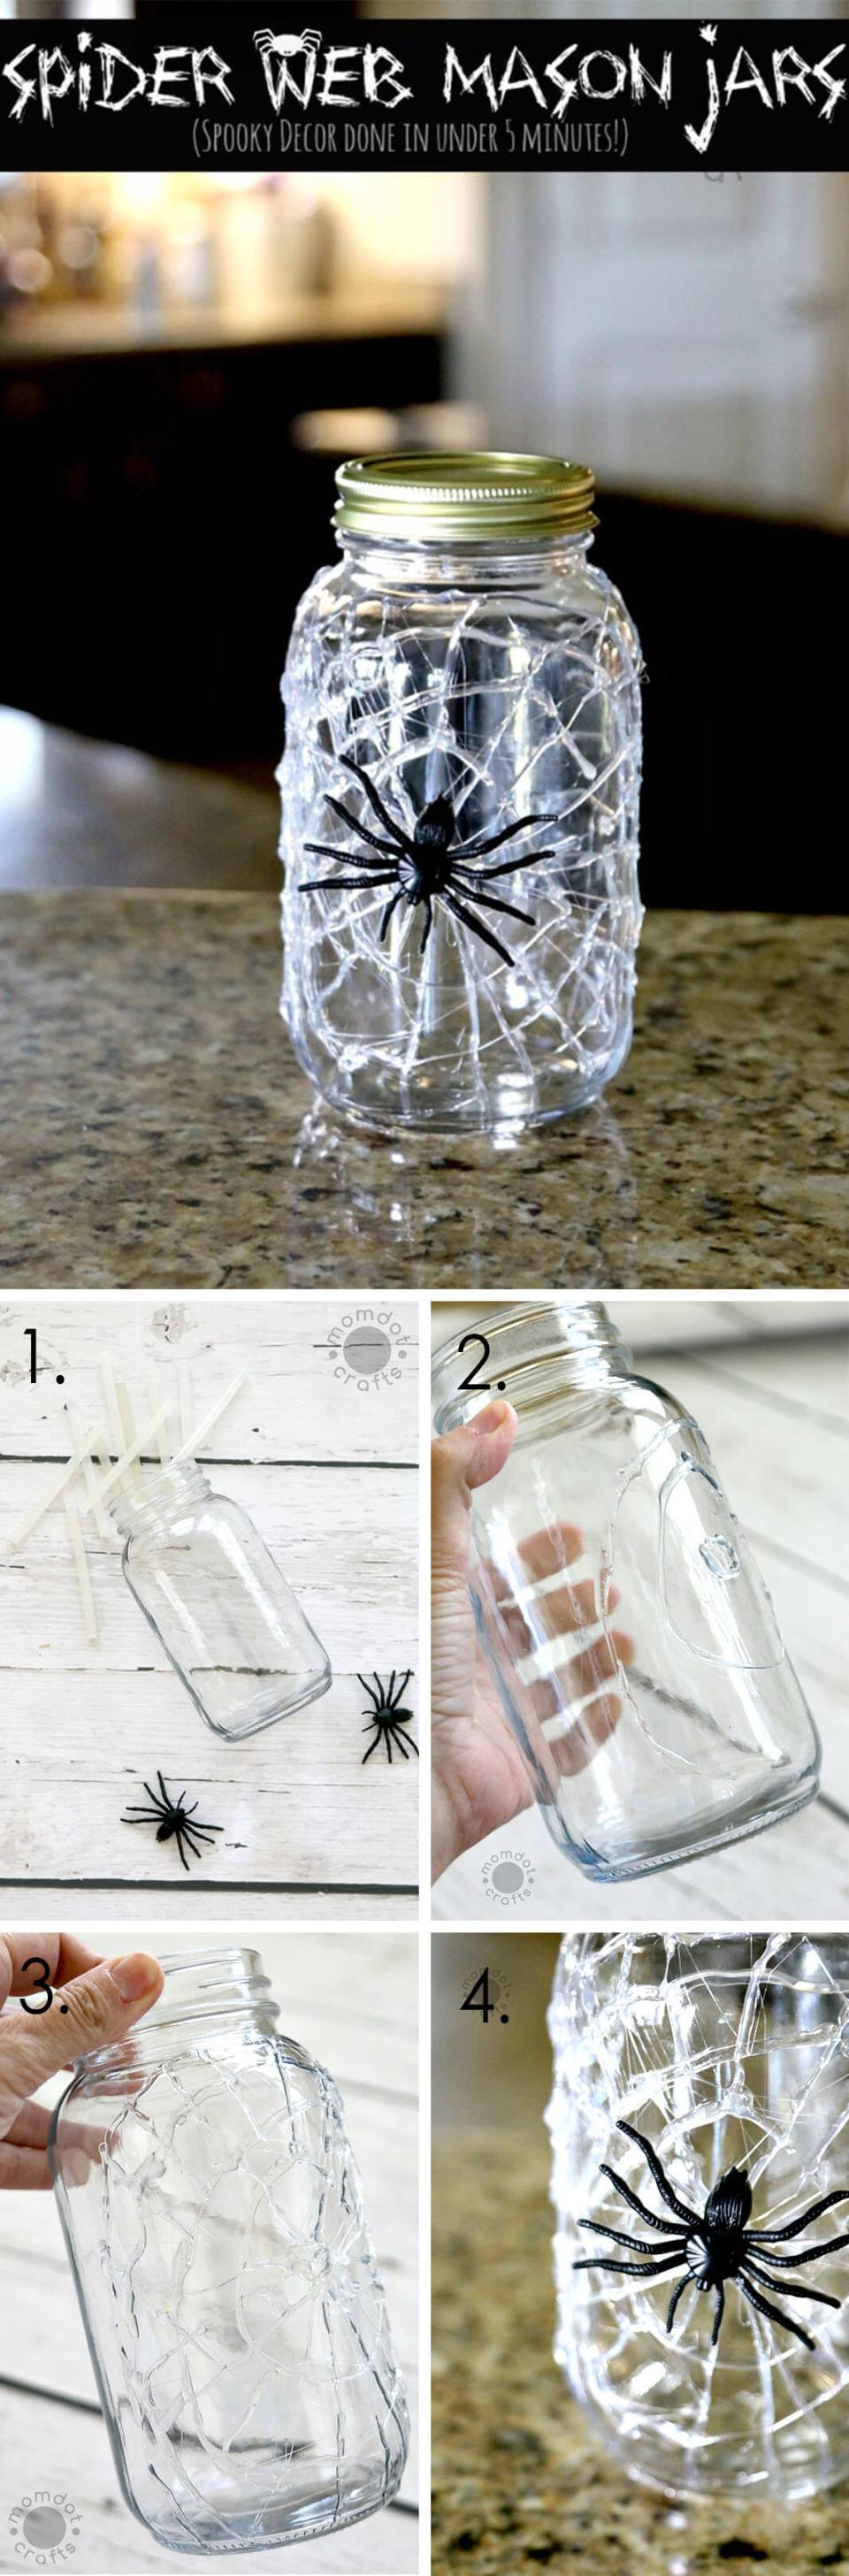 DIY Mason Jar Halloween Crafts: 10-Minute Hot Glue Spiderweb Mason Jar